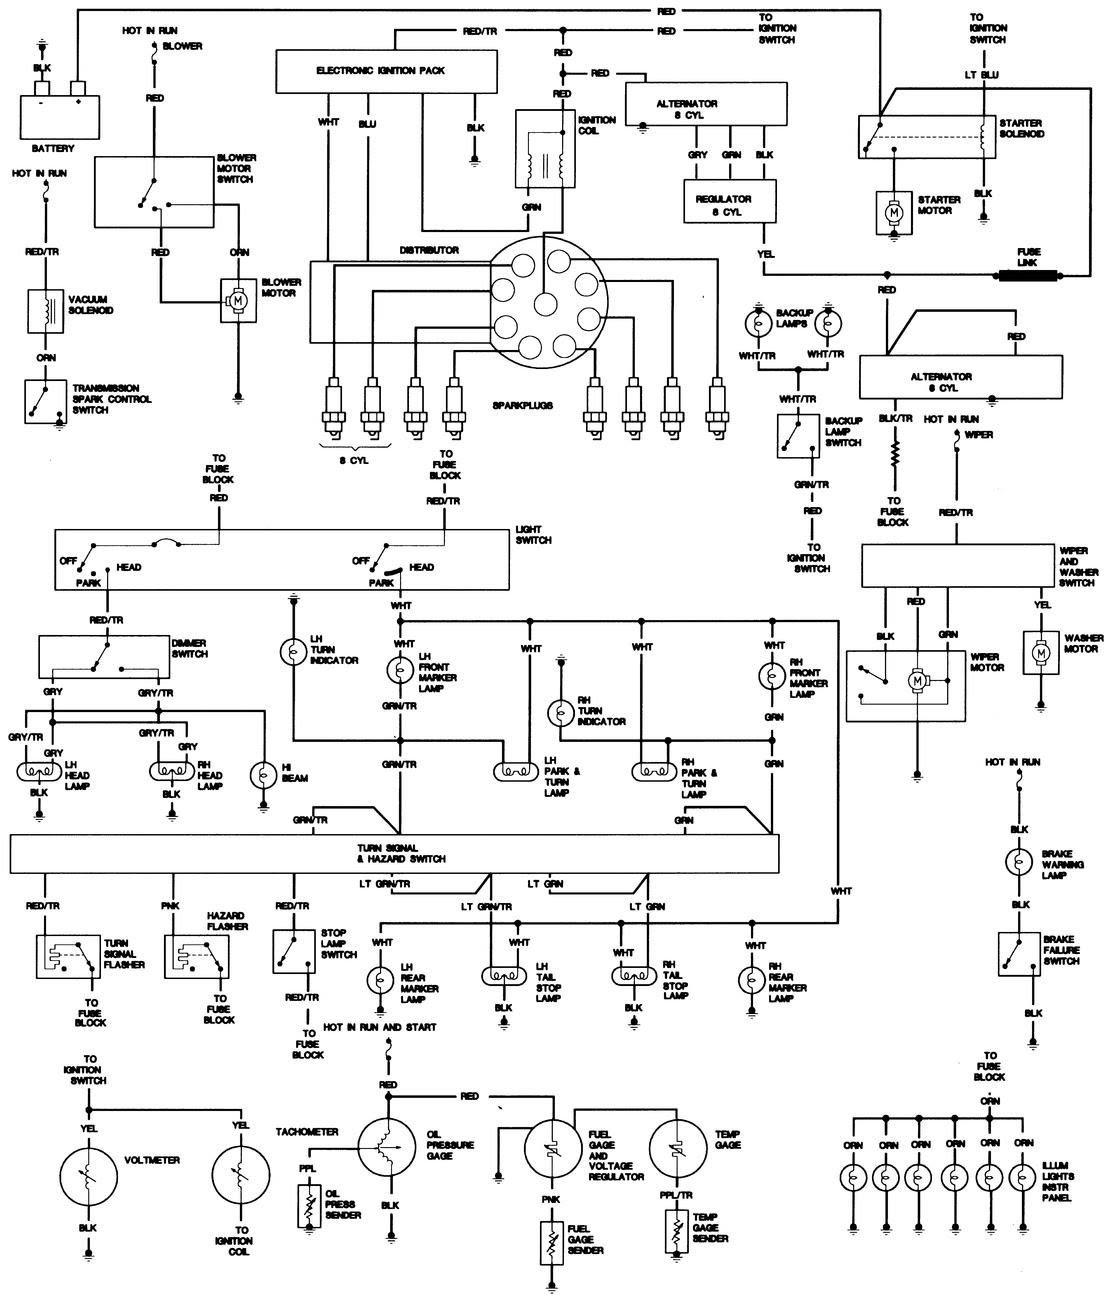 Diagram 1983 Jeep Cj5 Wiring Diagram Full Version Hd Quality Wiring Diagram Lopp Diagram Kuteportal Fr